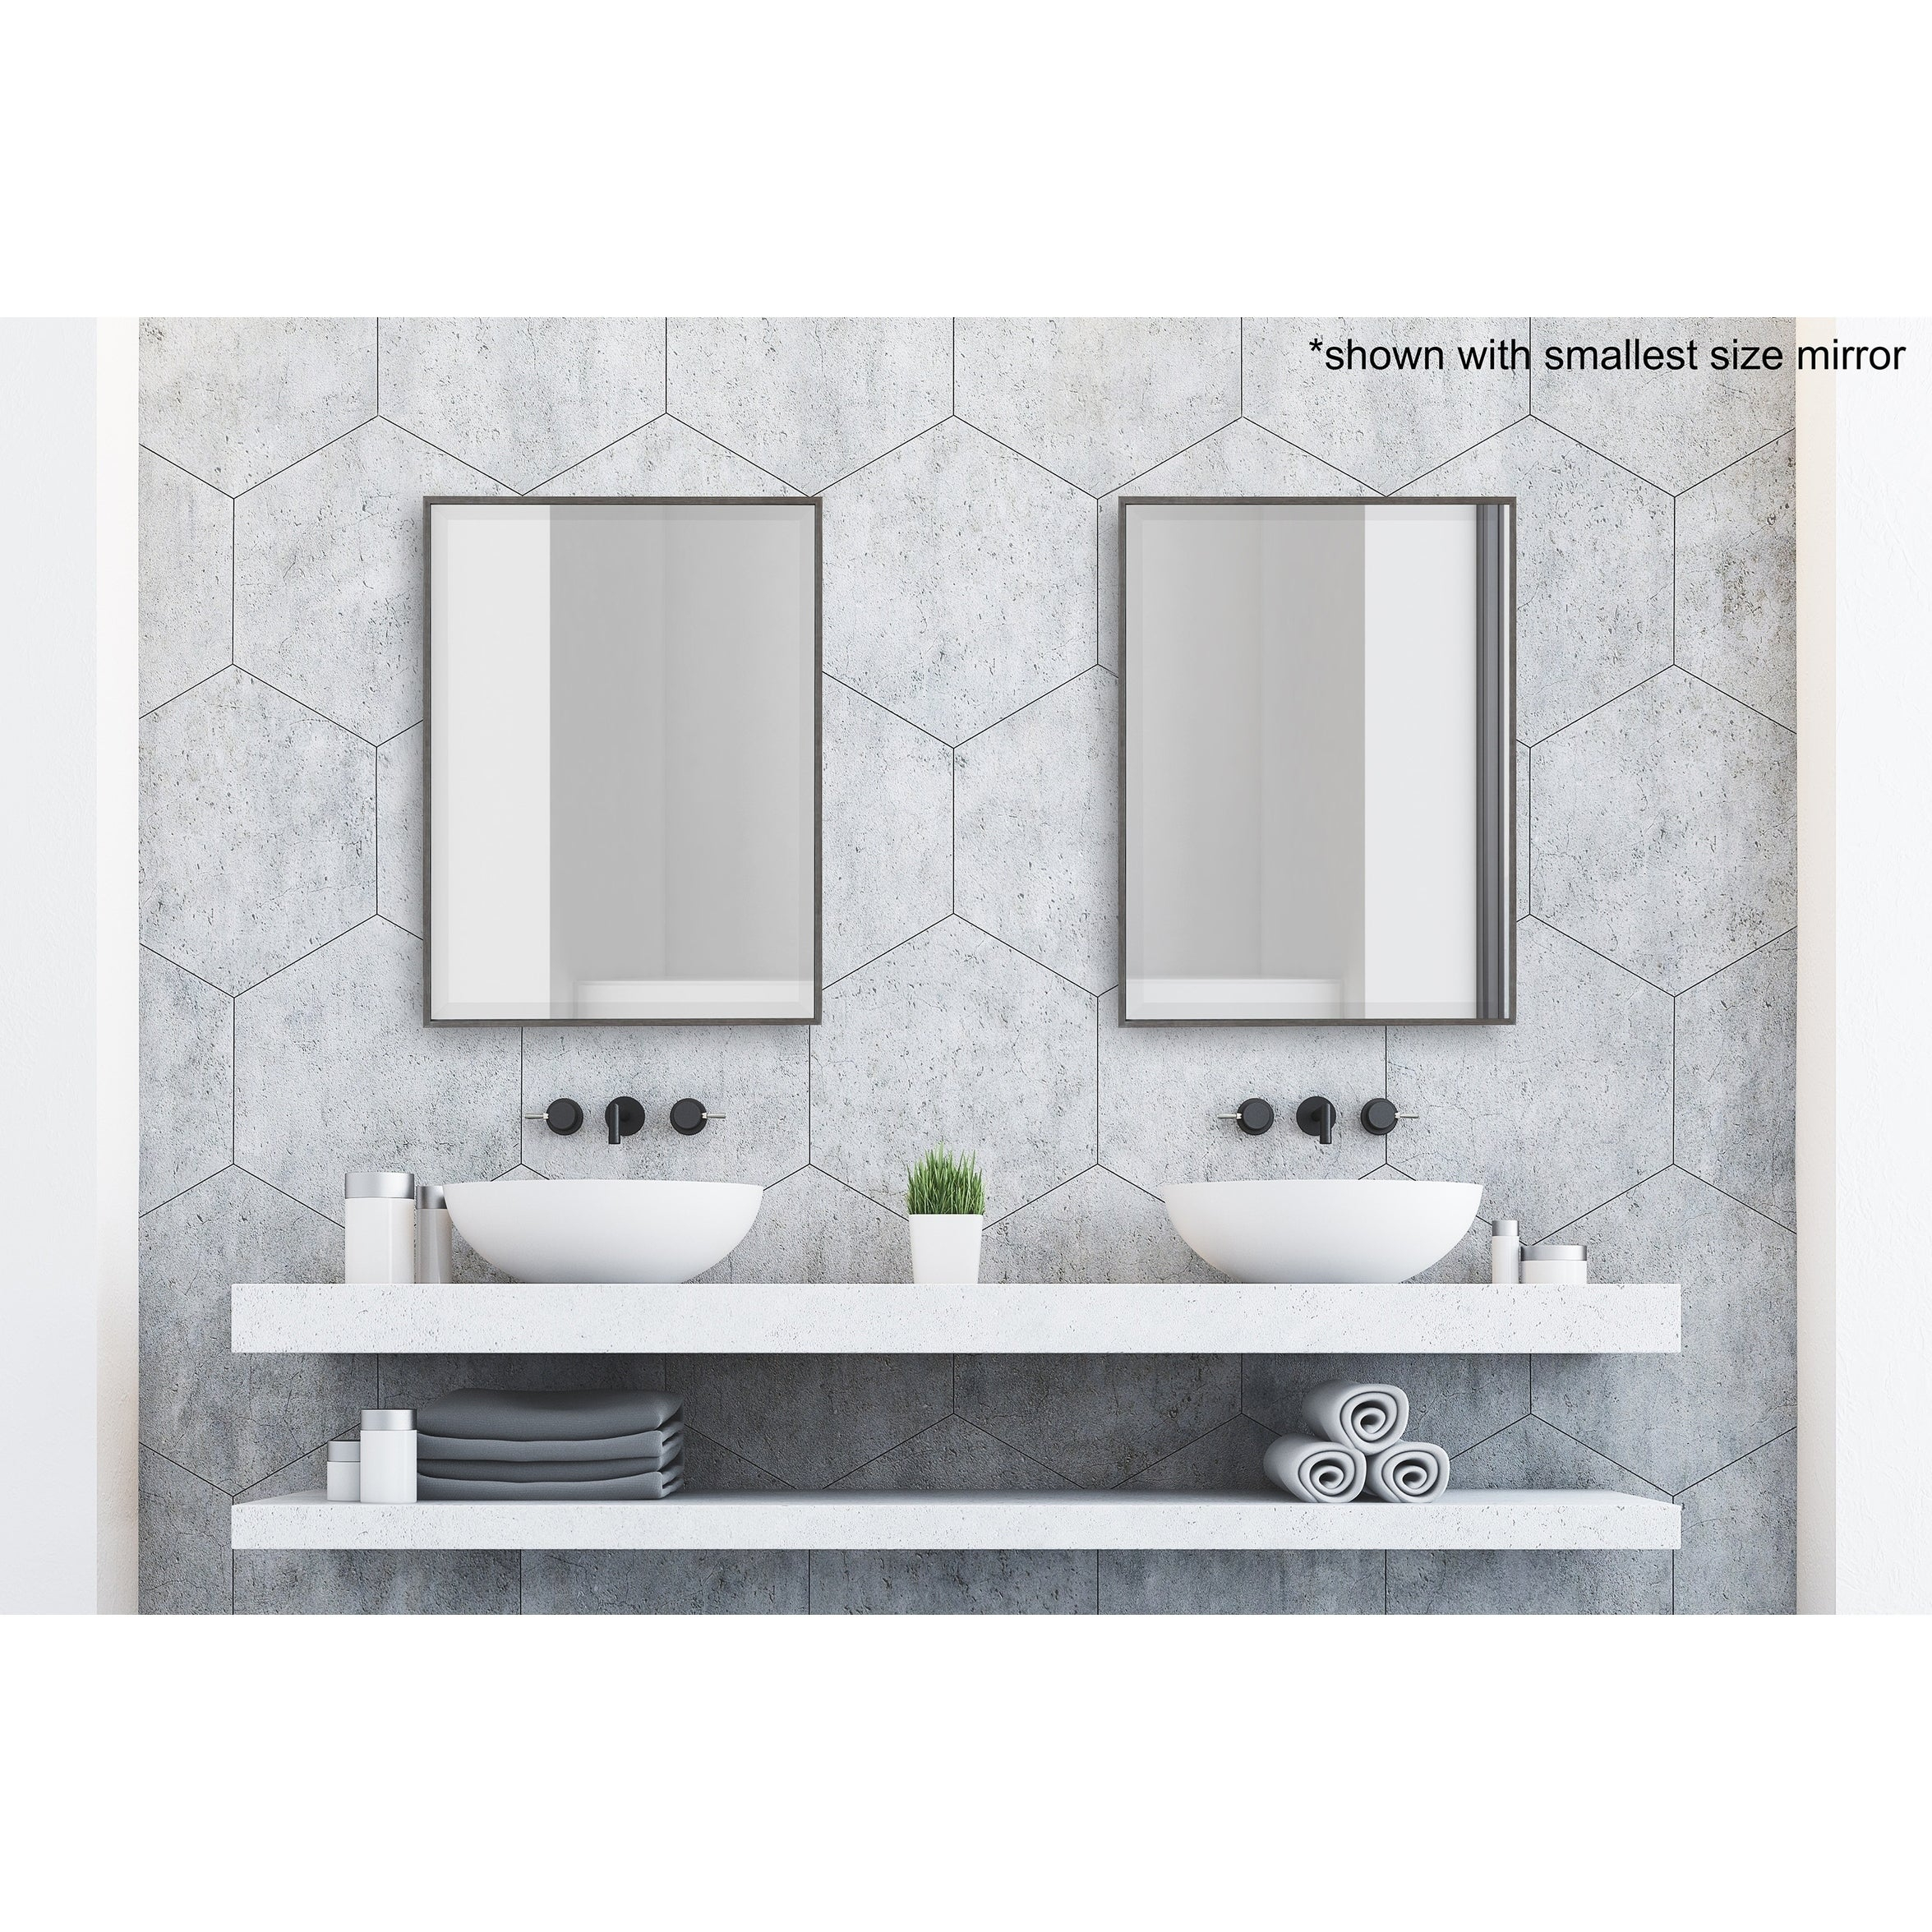 Bathroom Vanity Mirrors | Shop Online At Overstock Intended For Landover Rustic Distressed Bathroom/vanity Mirrors (View 16 of 20)